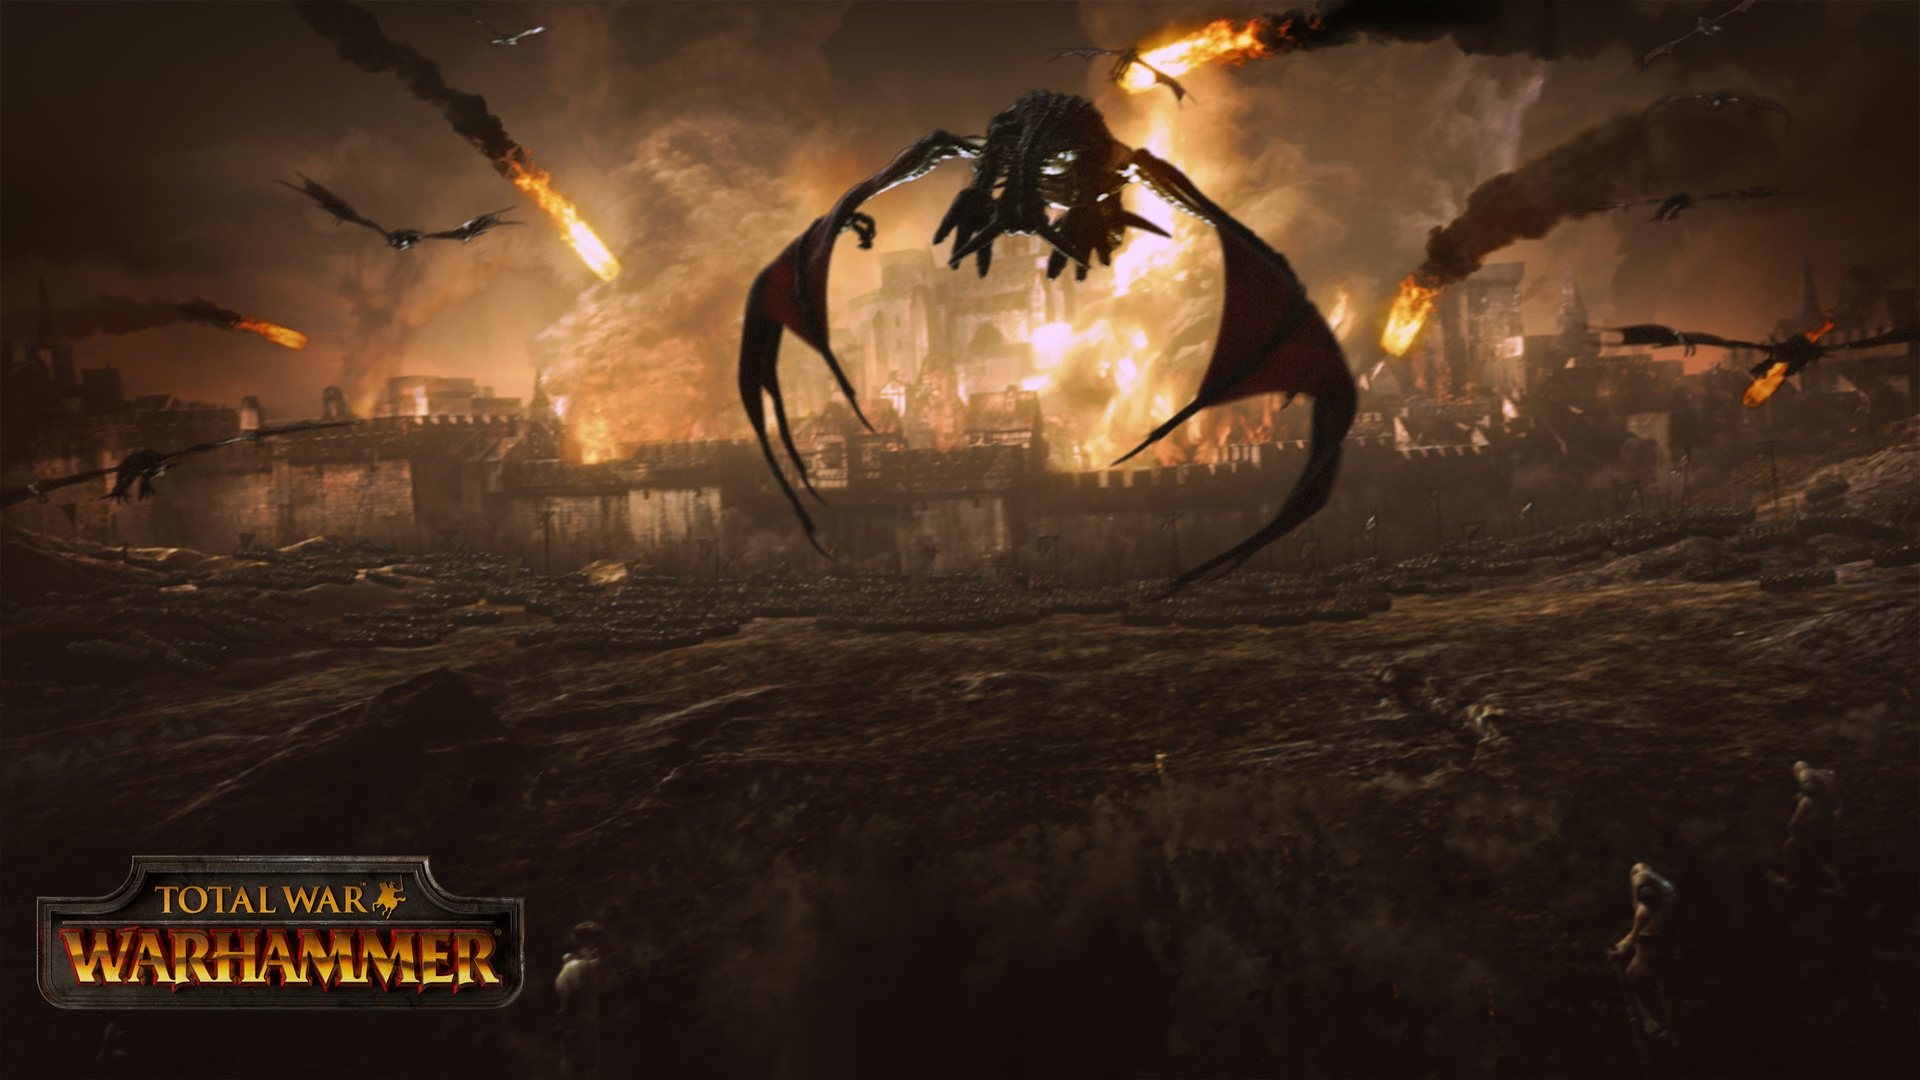 download total war warhammer game art hd 4k wallpapers in